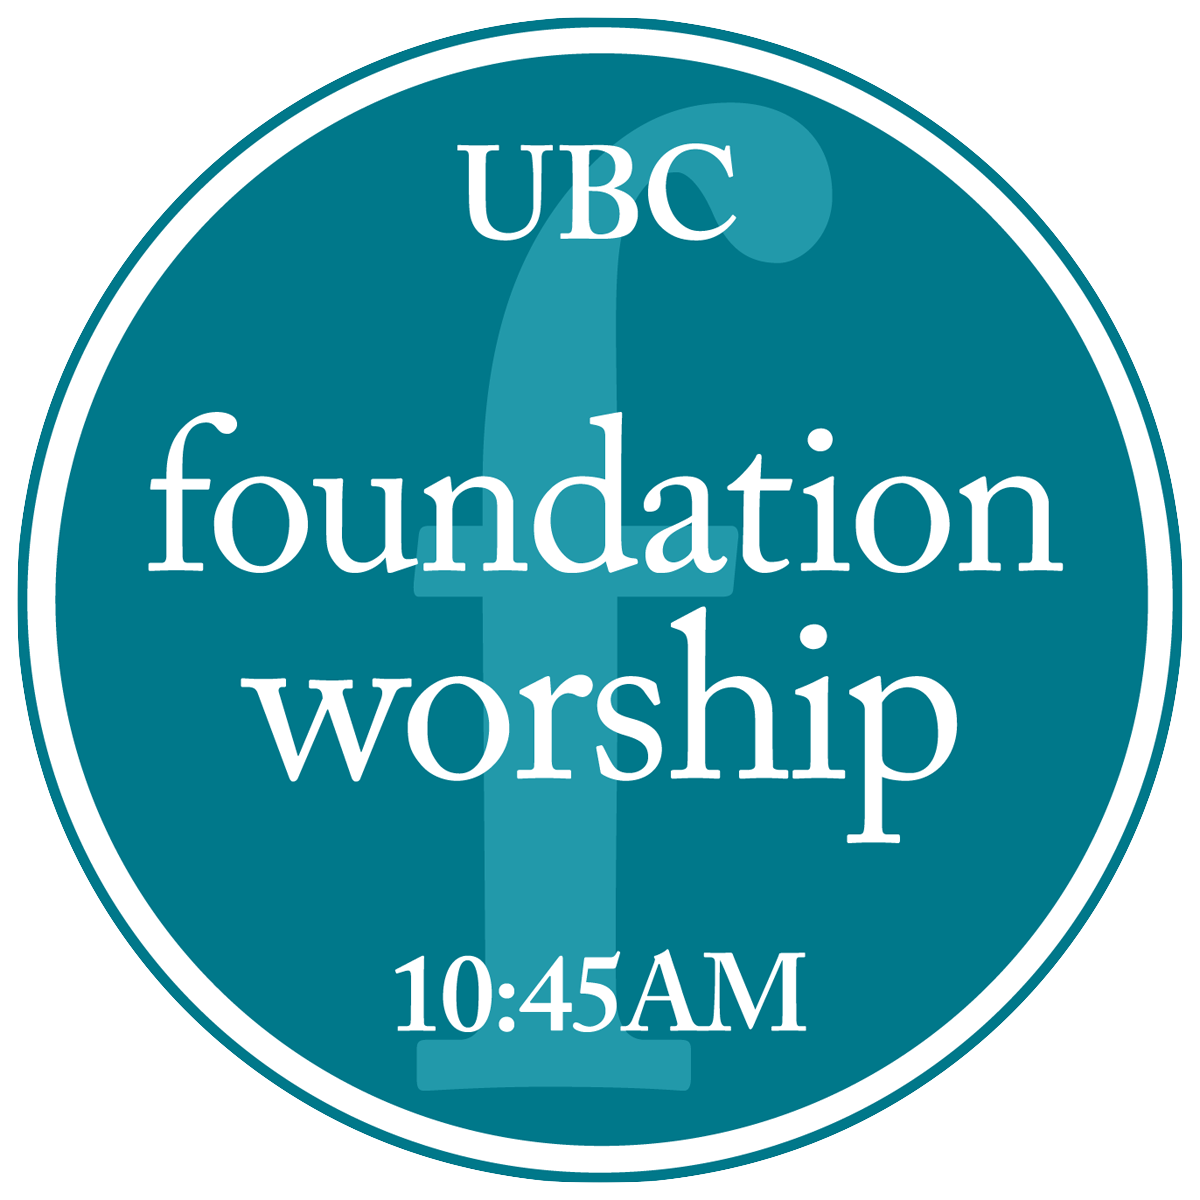 FoundationLogo.png